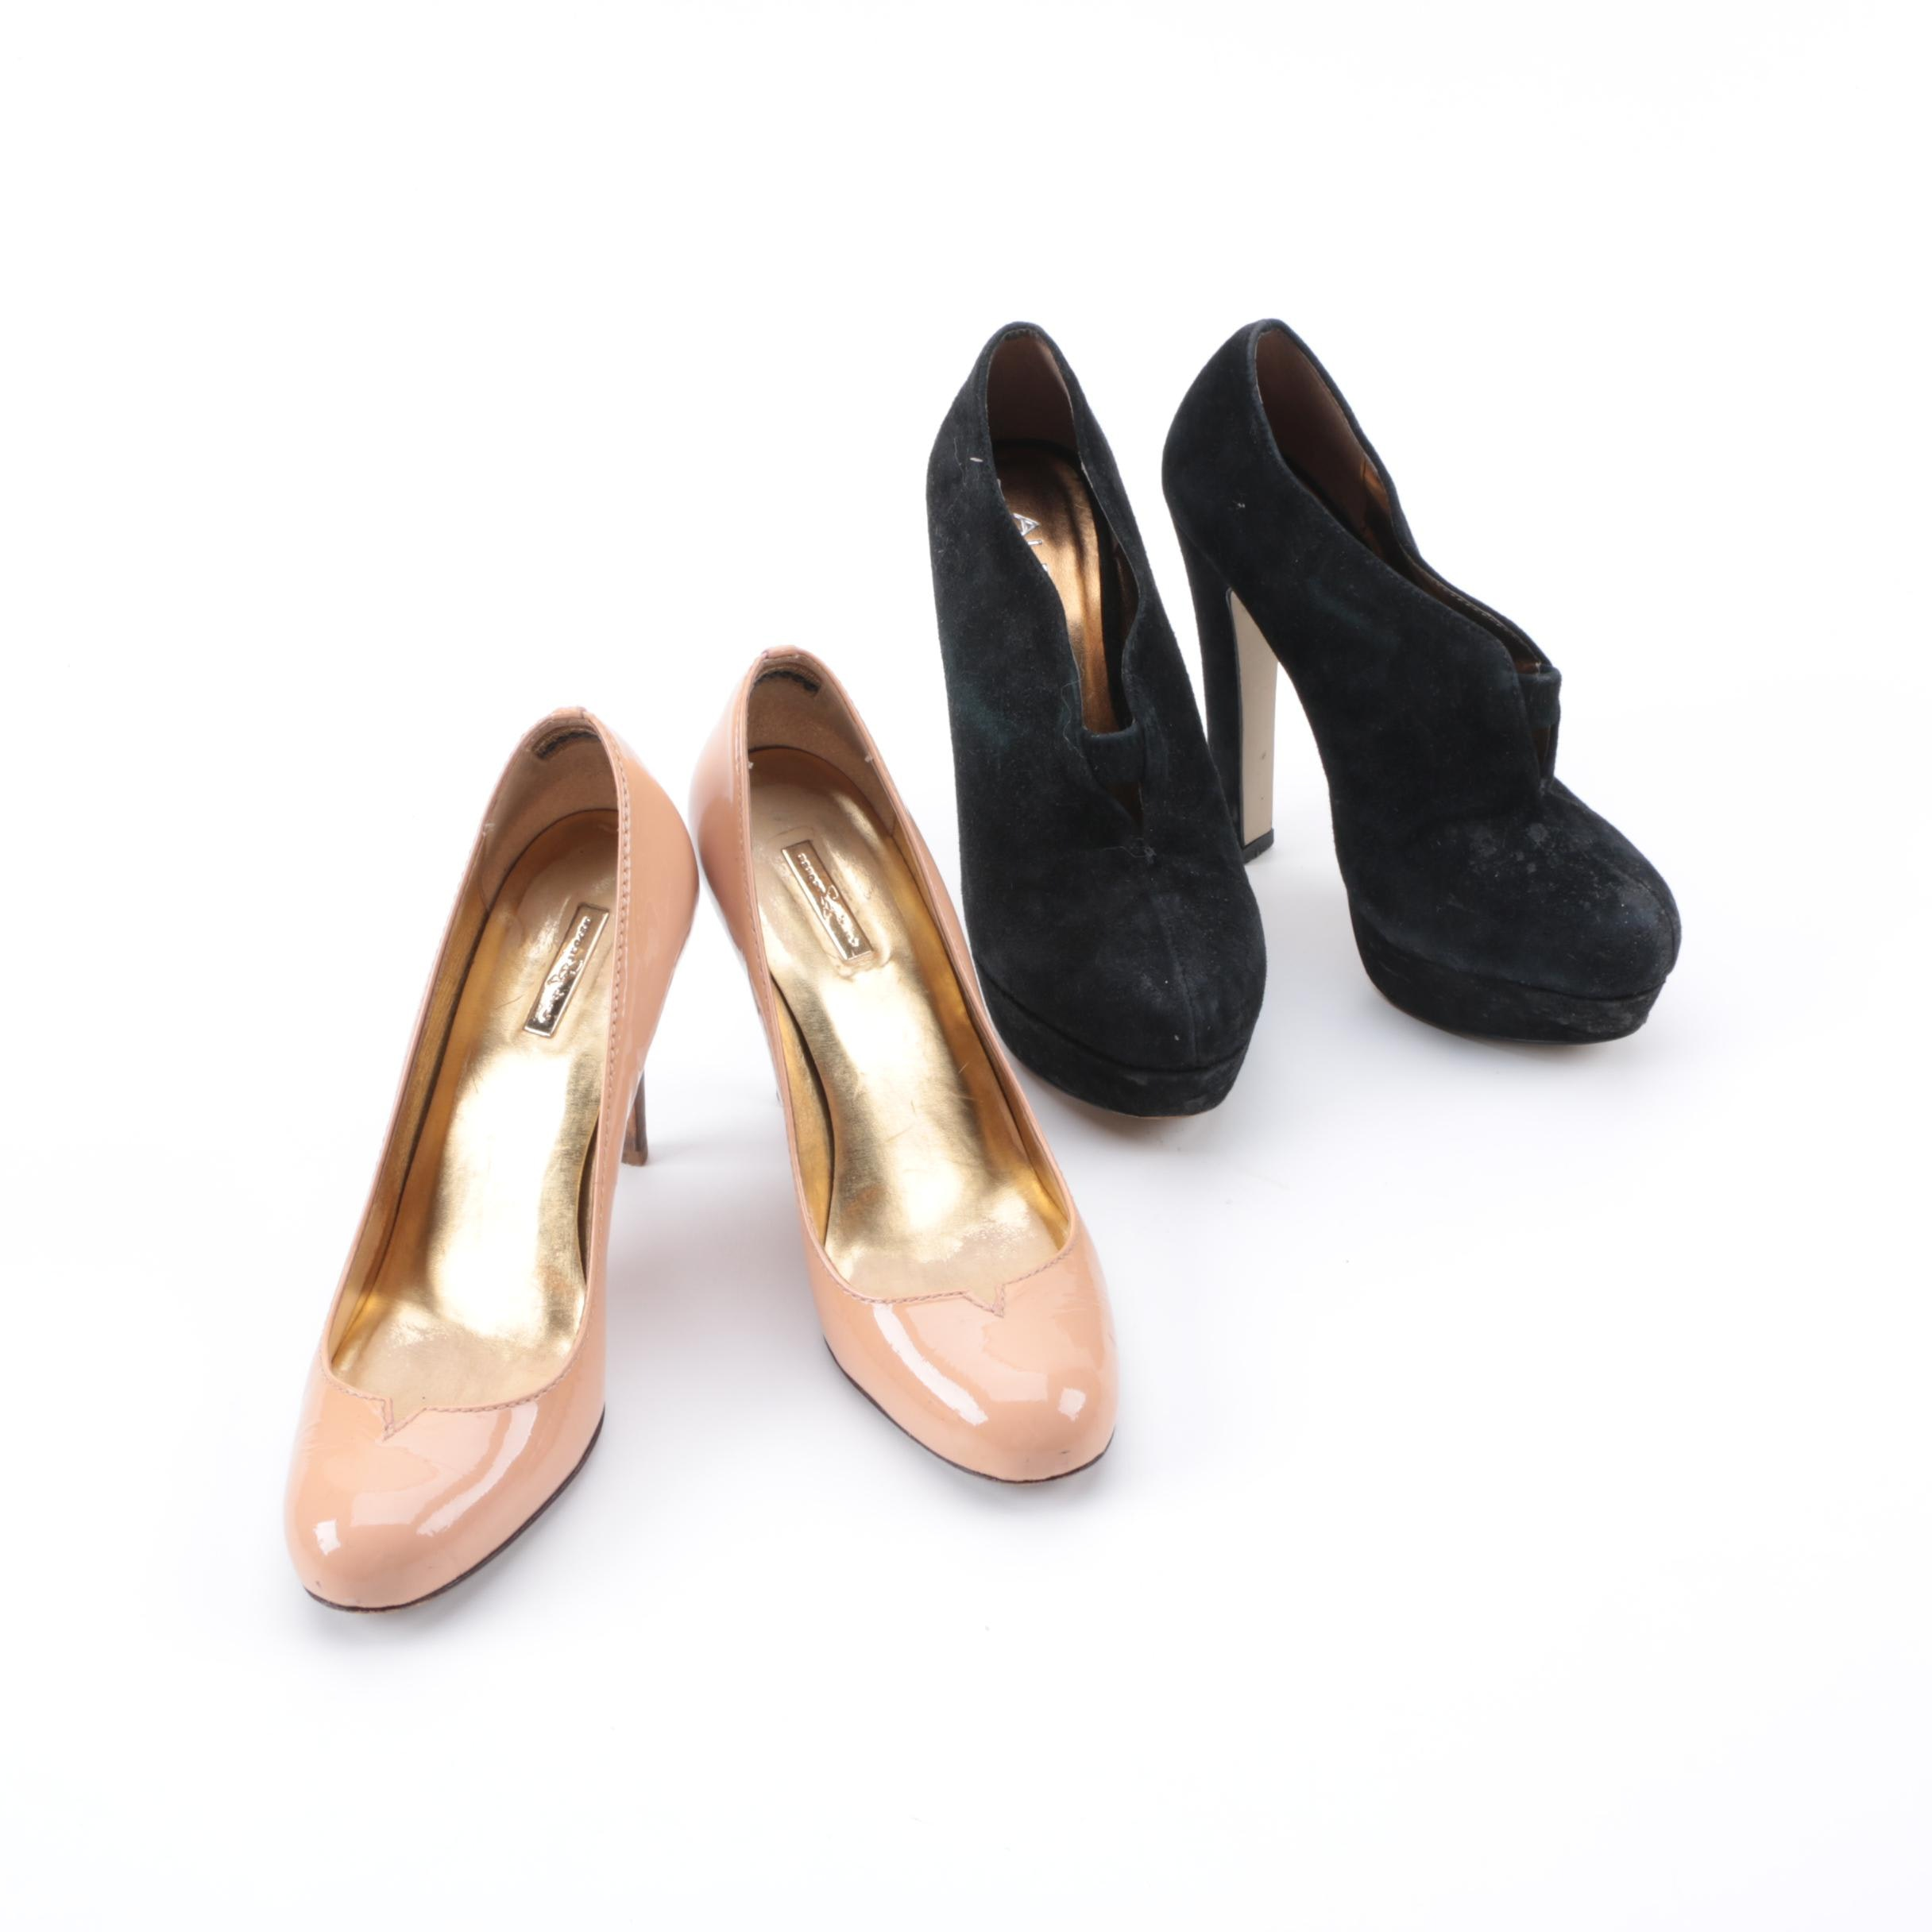 Two Pairs of High Heeled Shoes